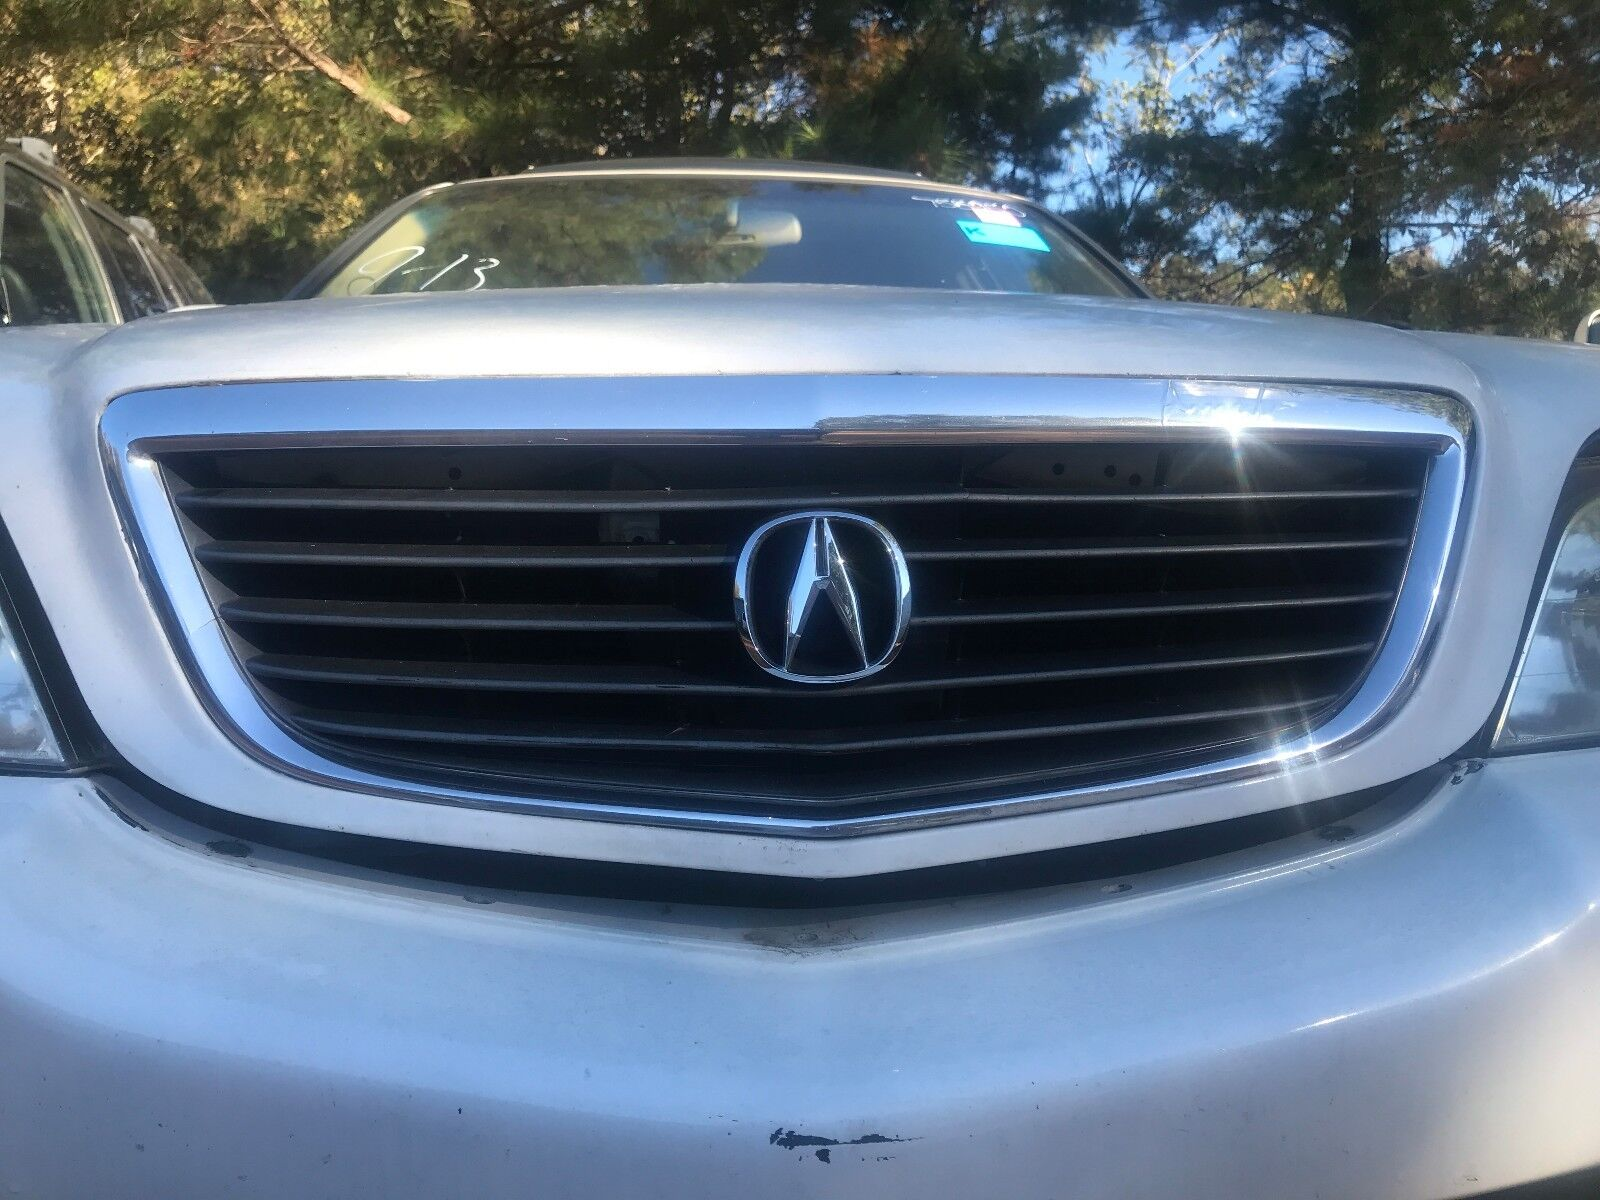 Used Acura Grilles For Sale Page - 2005 acura rl front grill